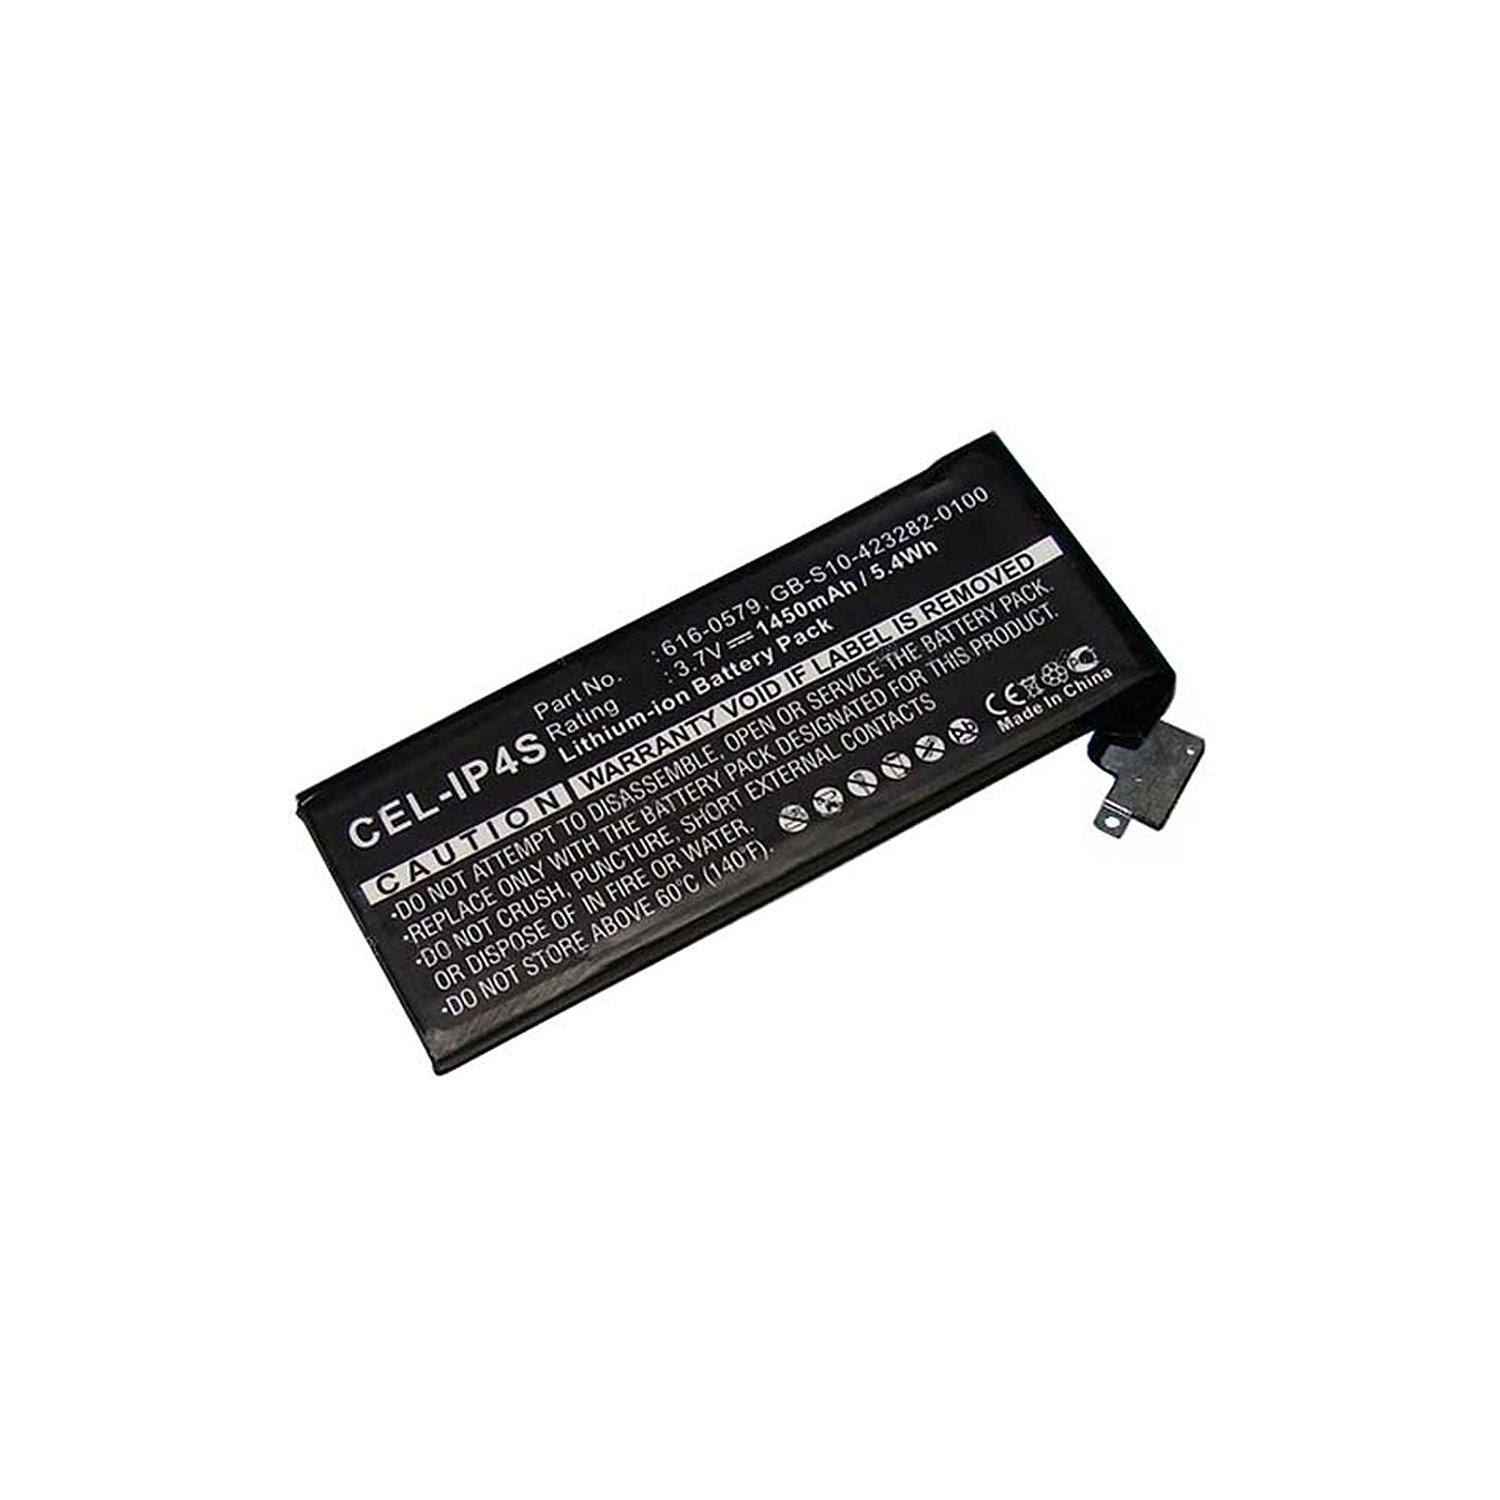 Cell Phone Battery for Apple iPhone 4S Replaces 616-0579 Li-Ion